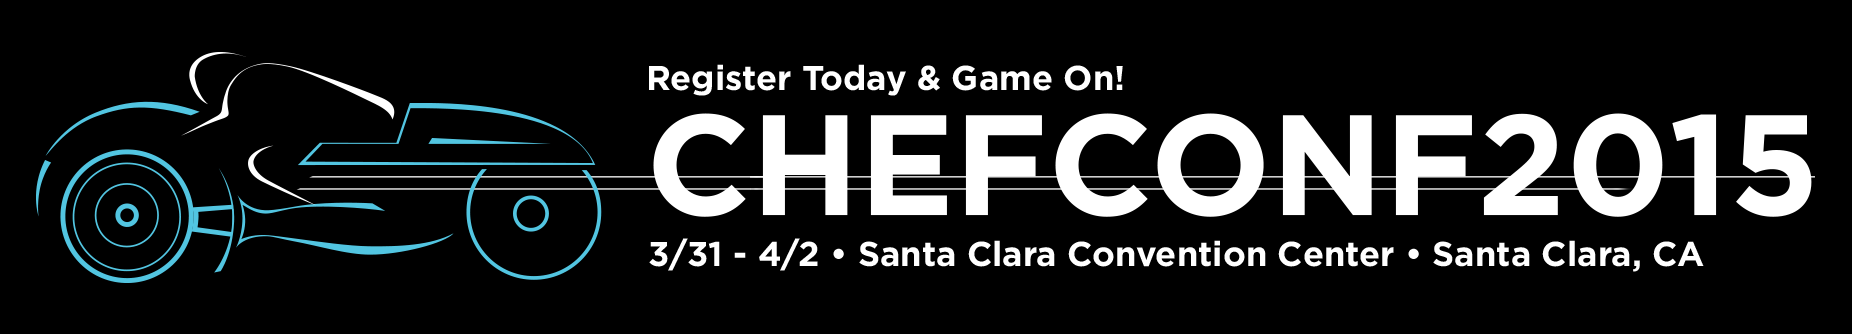 ChefConf 2015